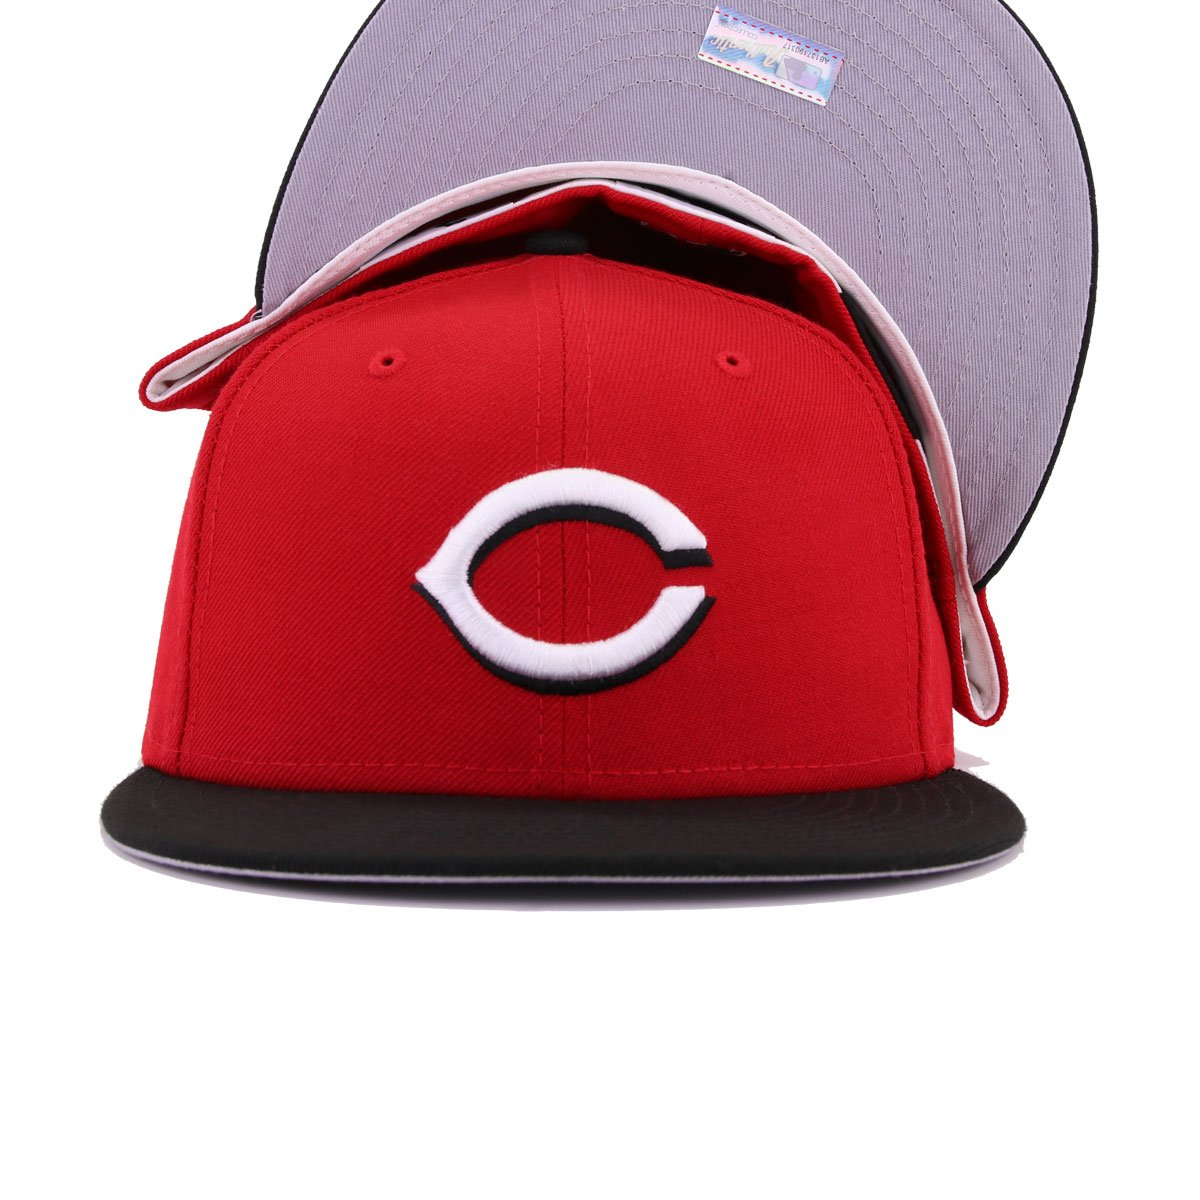 Cincinnati Reds Scarlet Black Alternate 1 Cooperstown New Era 59Fifty Fitted